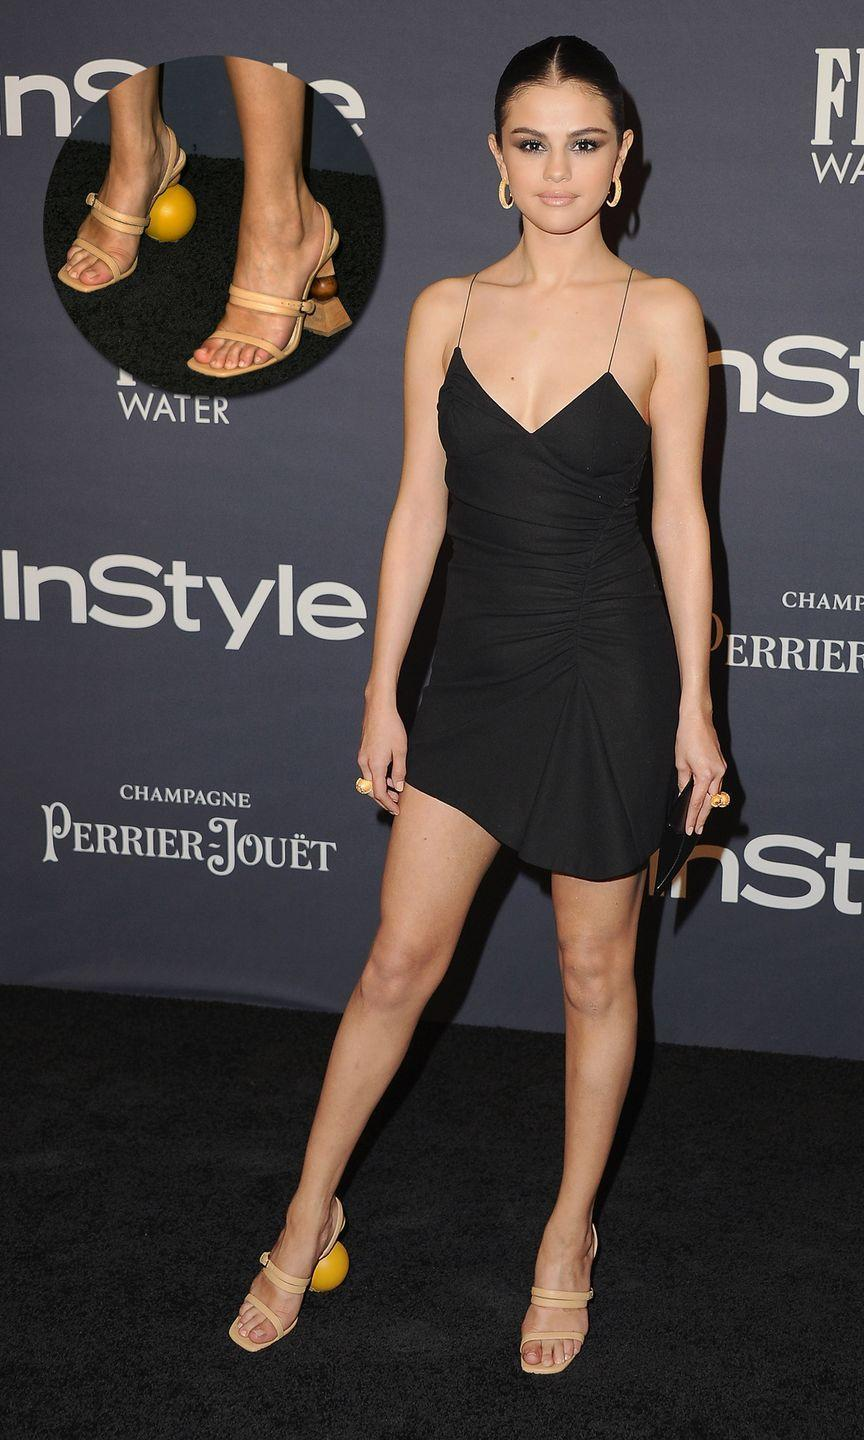 "<p>In <span class=""redactor-unlink"">Jacquemus</span> at the InStyle Awards in Los Angeles.</p>"